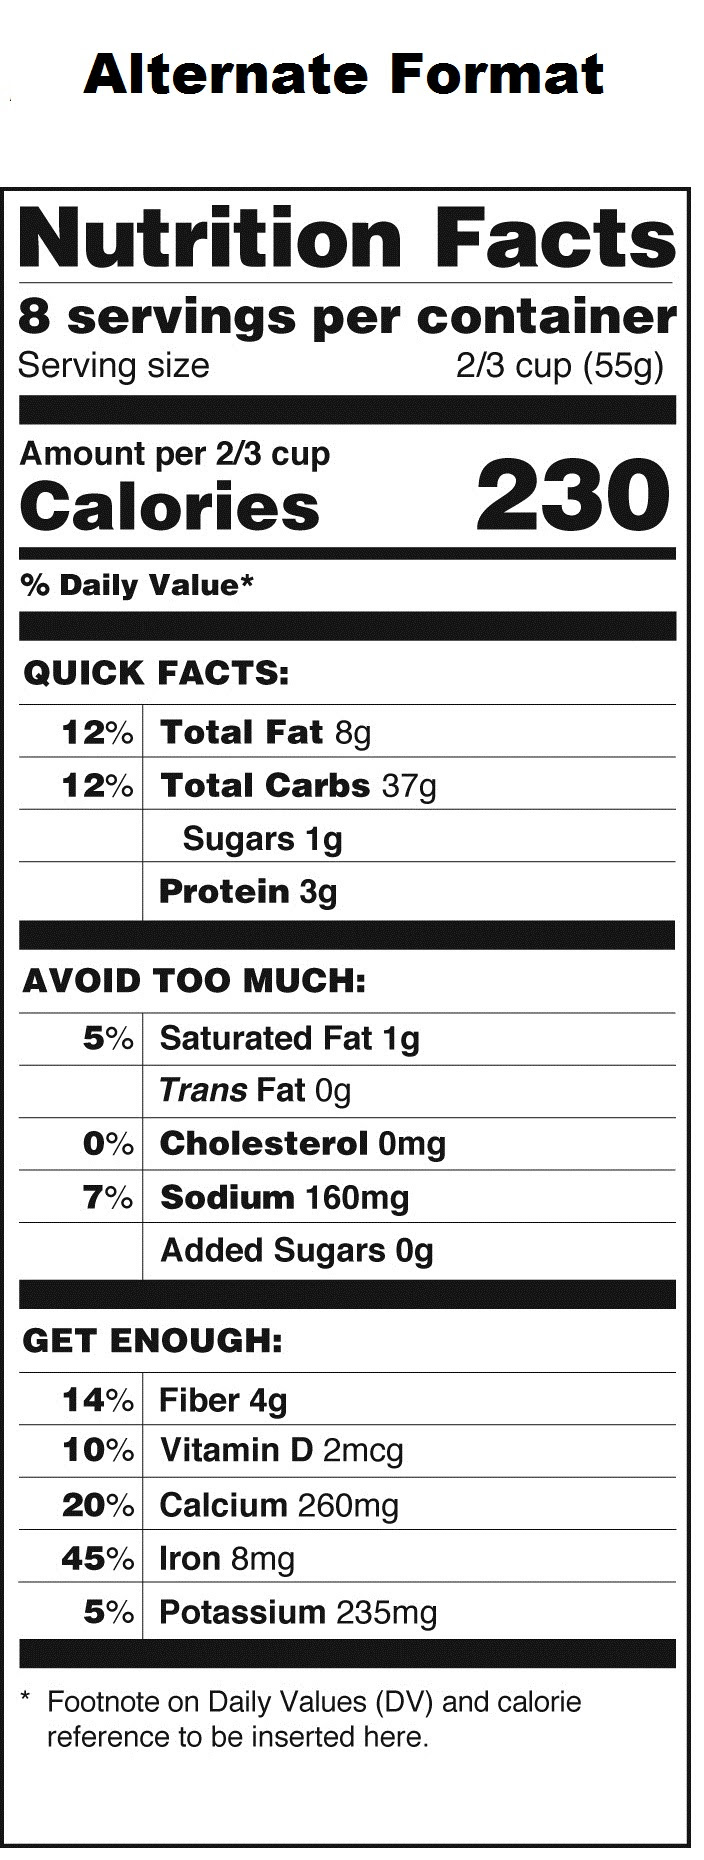 Nutrition Label Redesign: Your Voice Counts, So Use It!